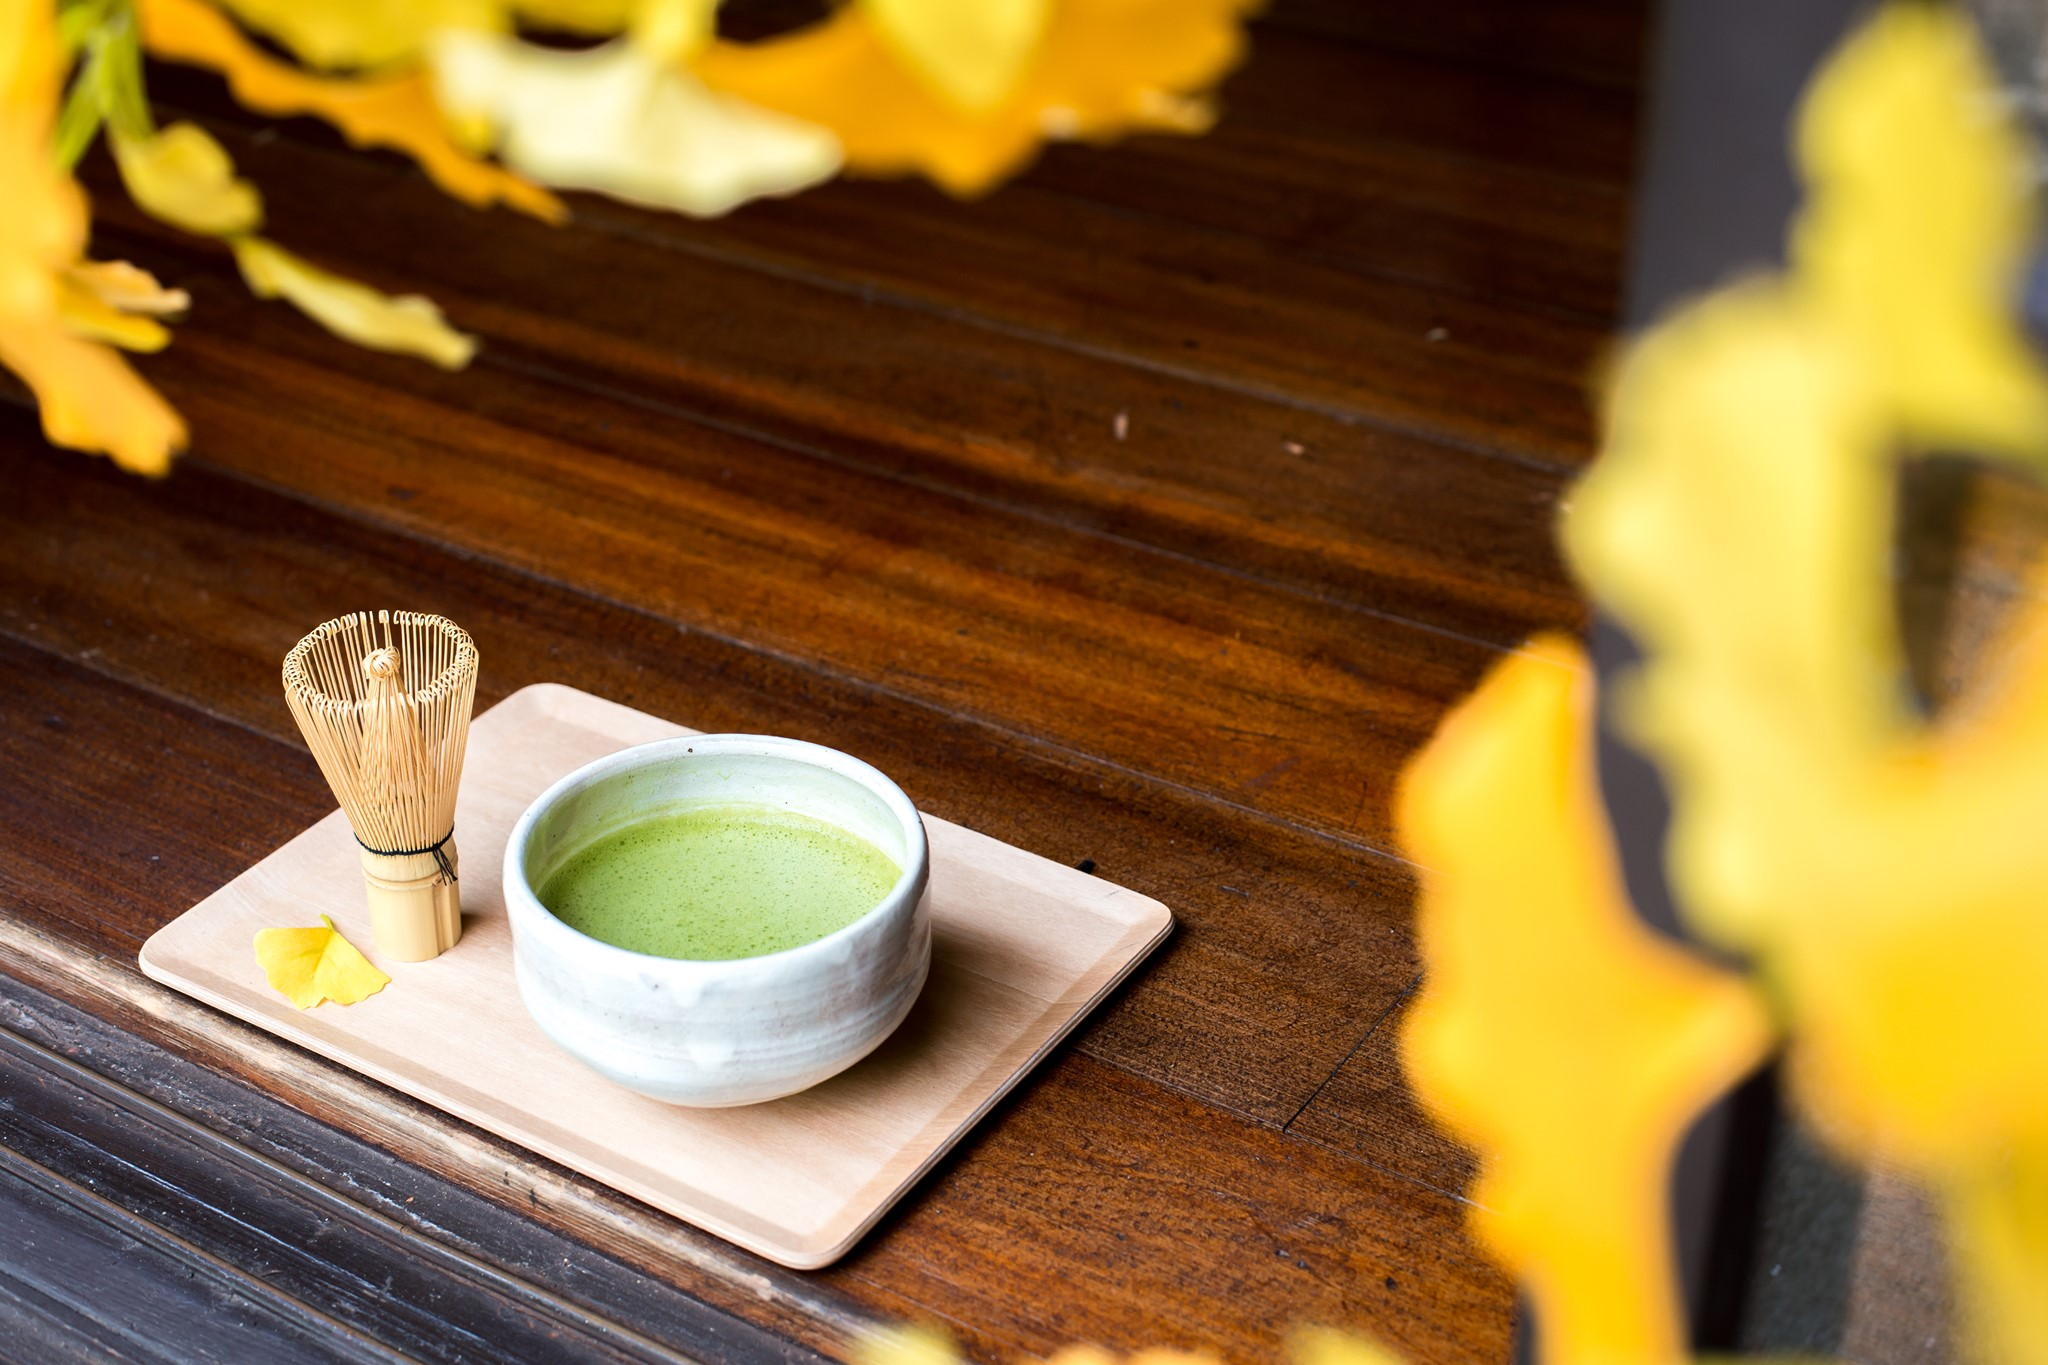 A Japanese Chain Opens on Crescent With Ramen and Piles of Matcha